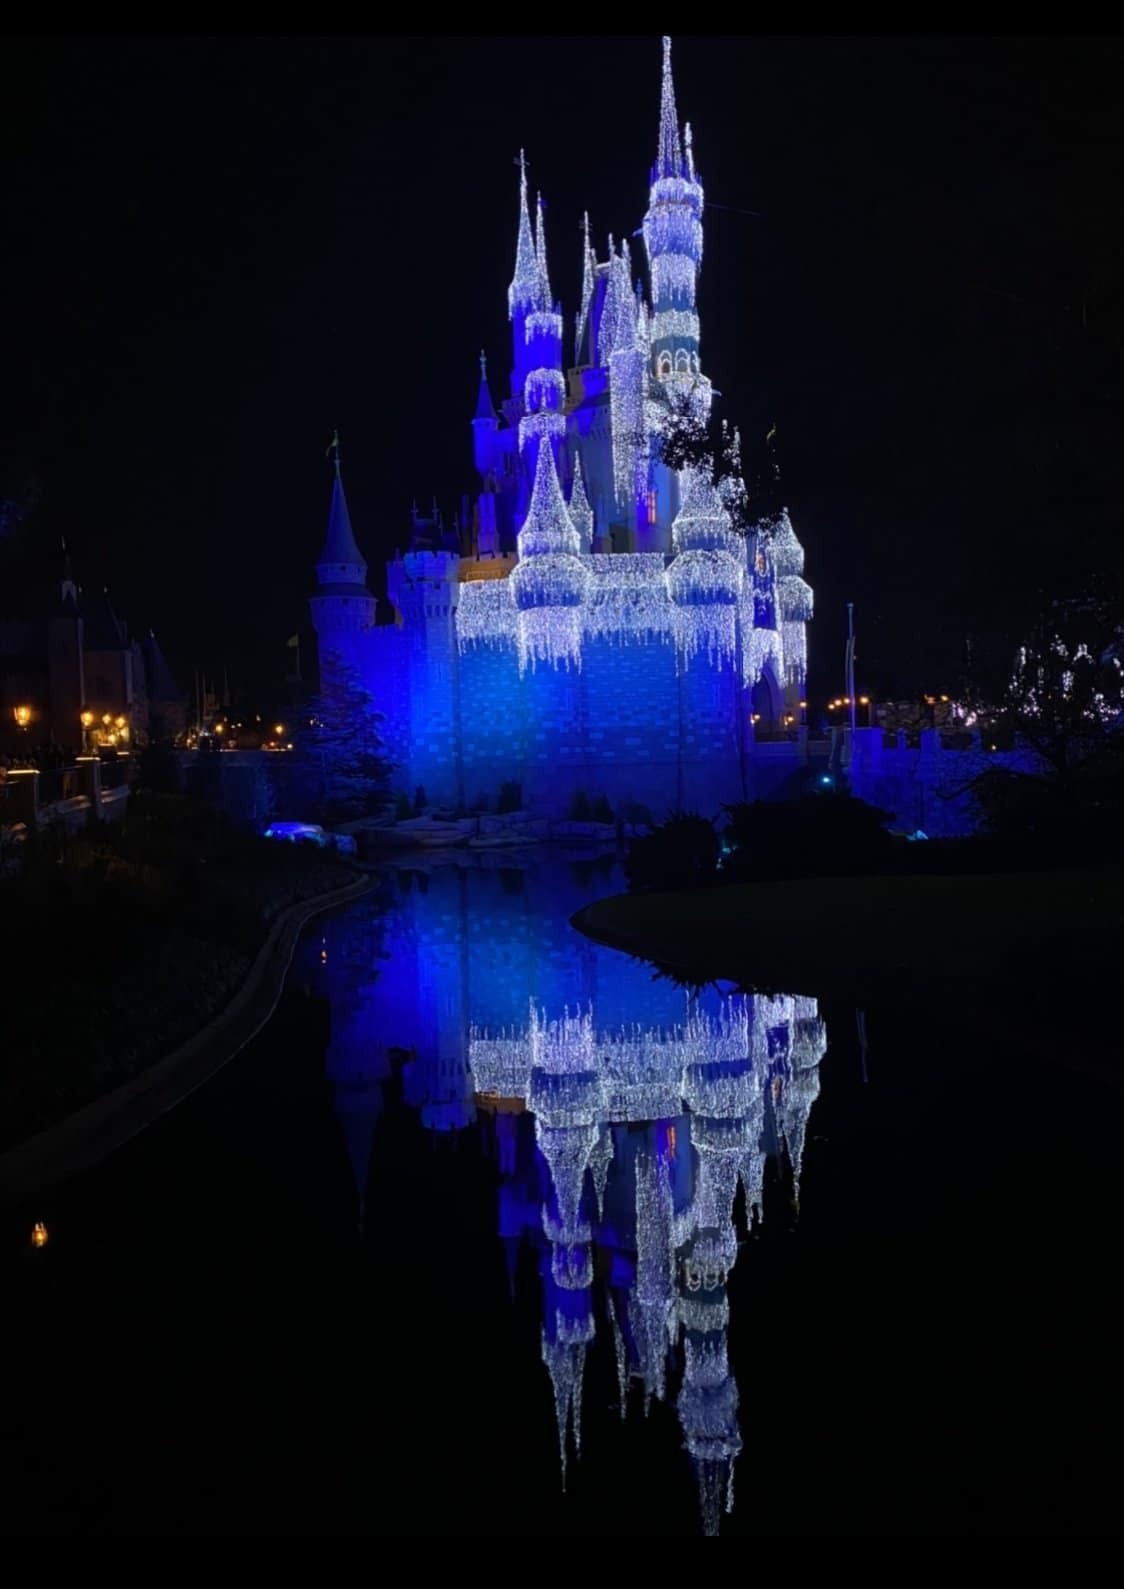 cinderella castle with reflection in the lake